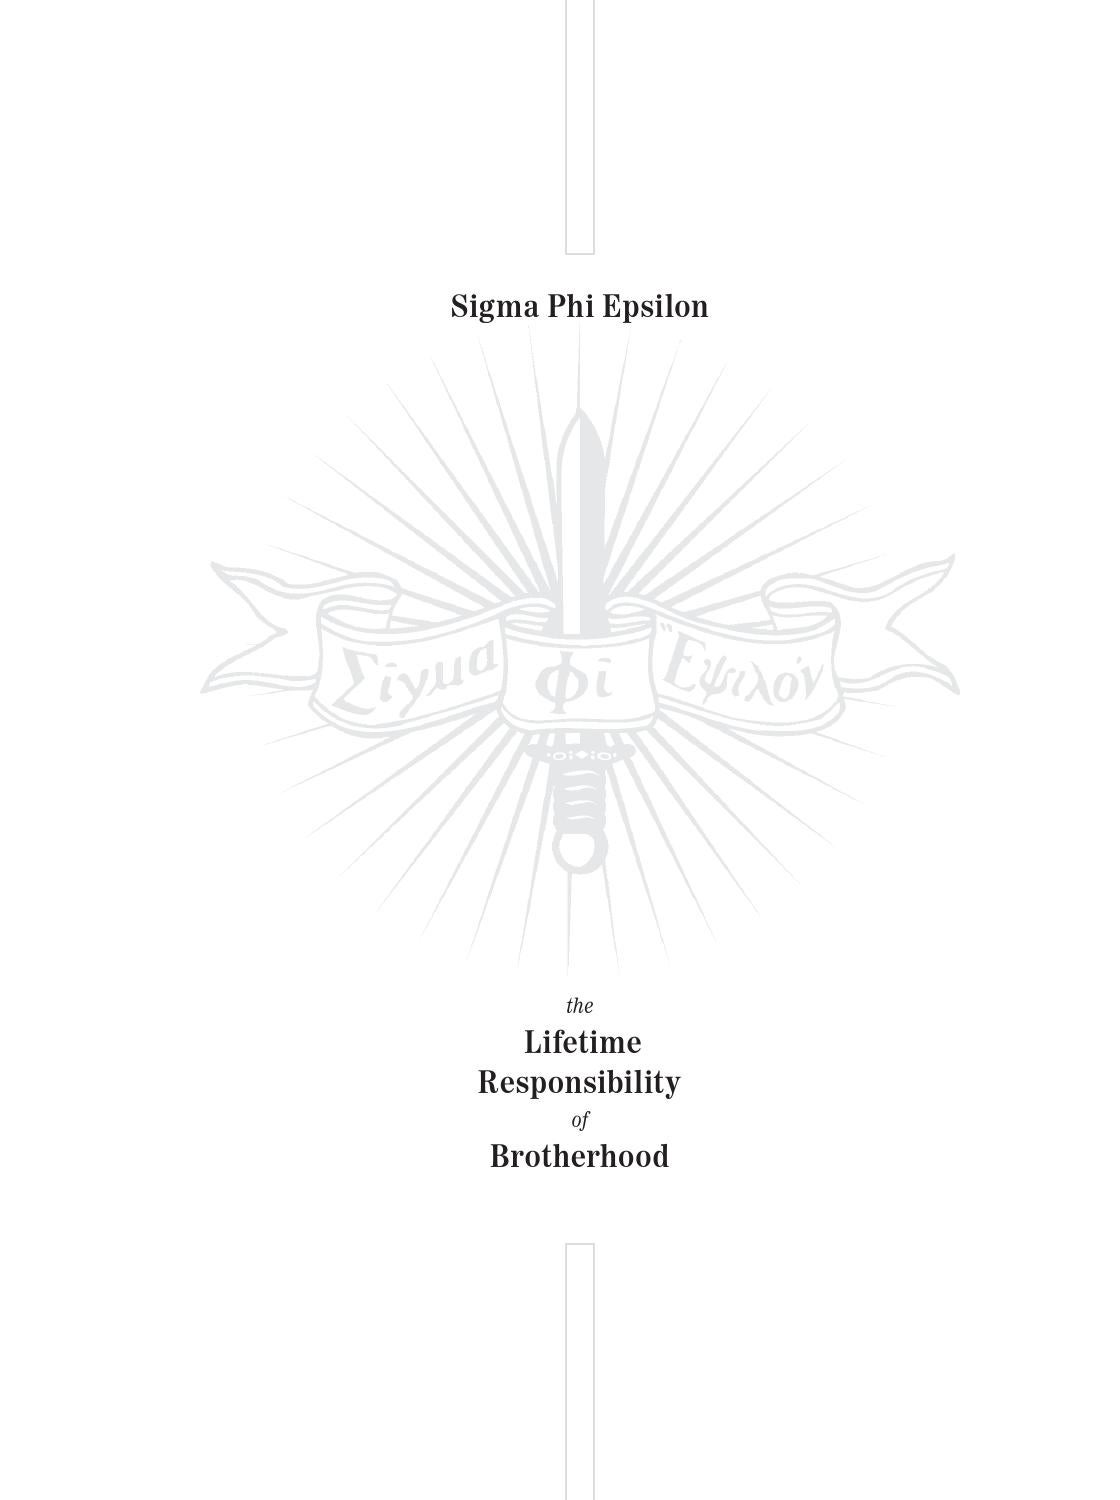 The lifetime responsibility of brotherhood by sigma phi epsilon the lifetime responsibility of brotherhood by sigma phi epsilon issuu buycottarizona